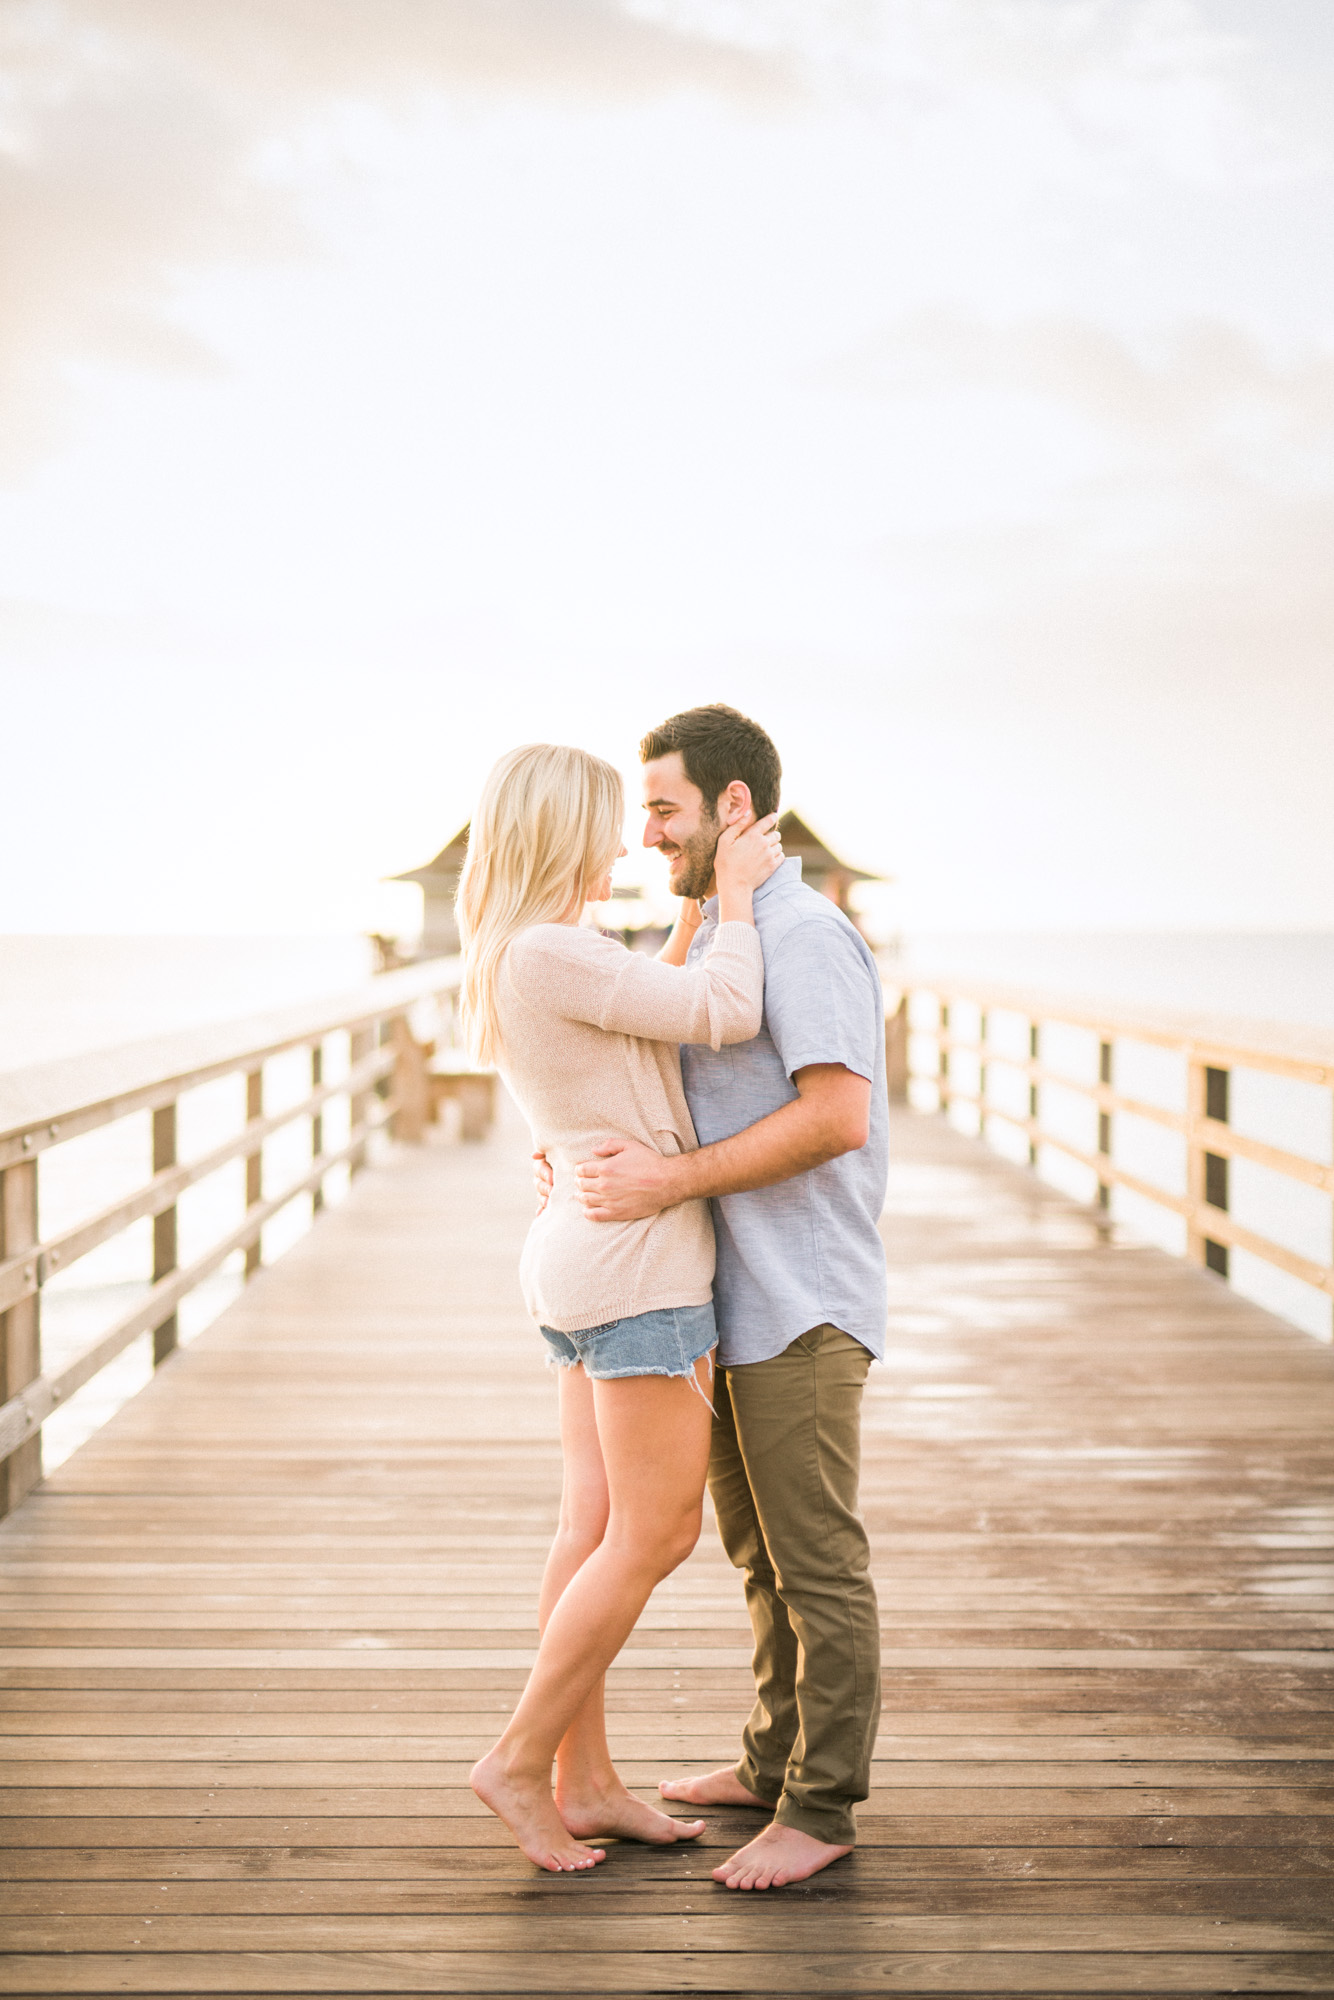 naples-florida-beach-engagement-hunter-ryan-photo-naples-weddings-02842.jpg